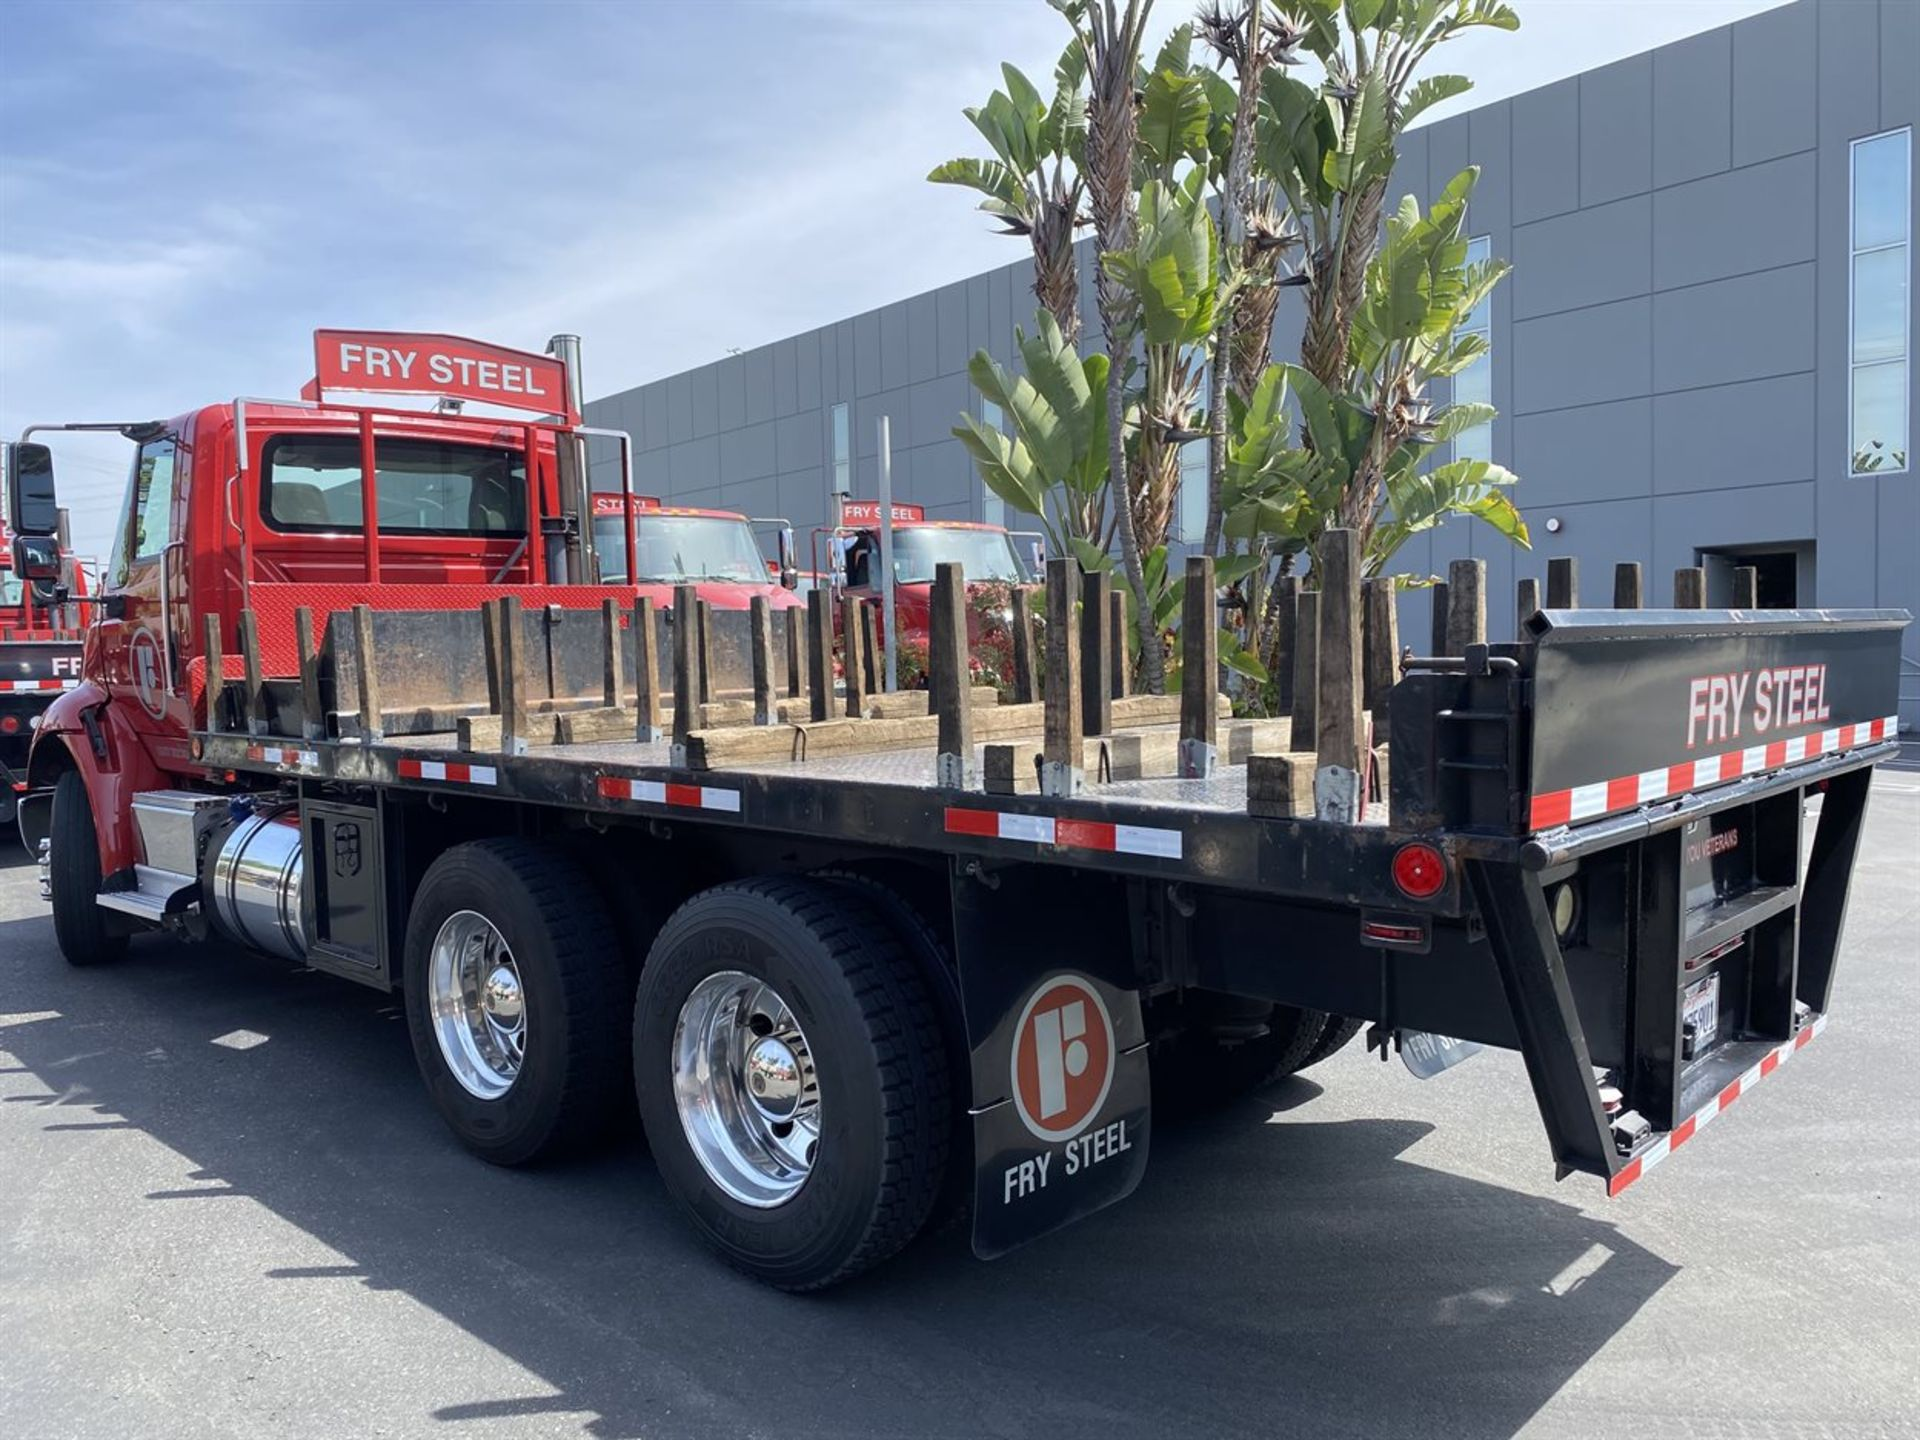 2016 INTERNATIONAL 18' Stake Bed Truck, VIN 3HTHXSNR2GN003228, 122,350 Miles at time of inspection - Image 4 of 21